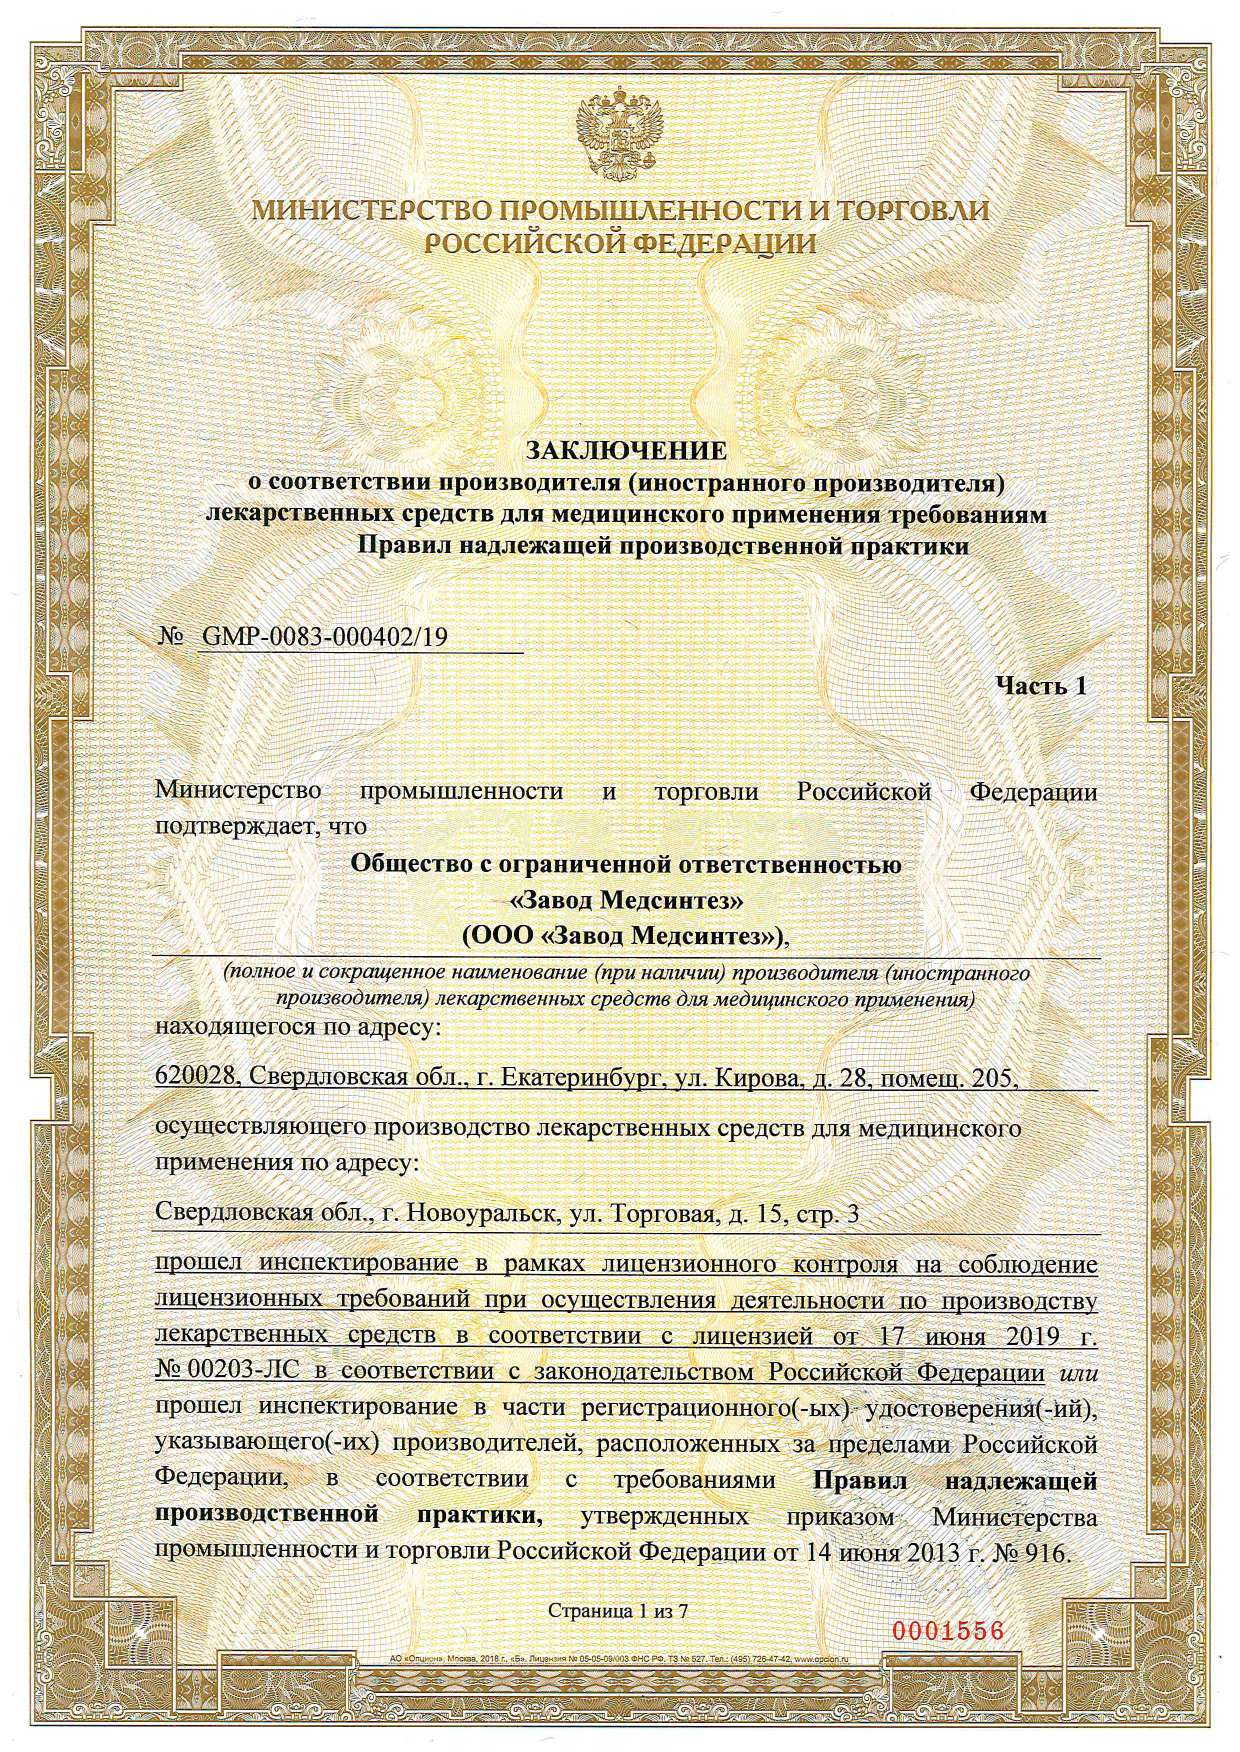 GMP certificate of the Ministry of Industry and Trade of the Russian Federation